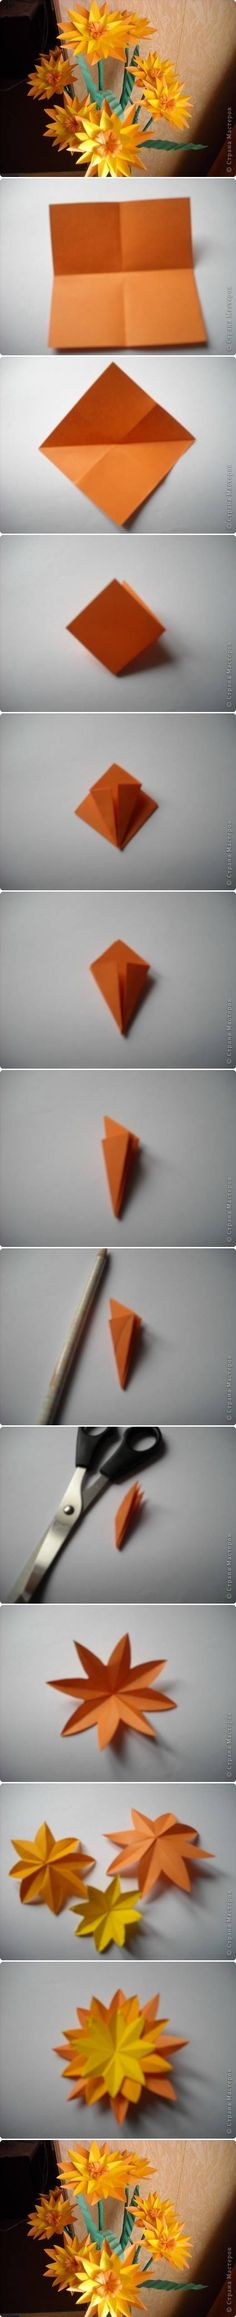 DIY Paper Marigold Flower DIY Projects | UsefulDIY.com